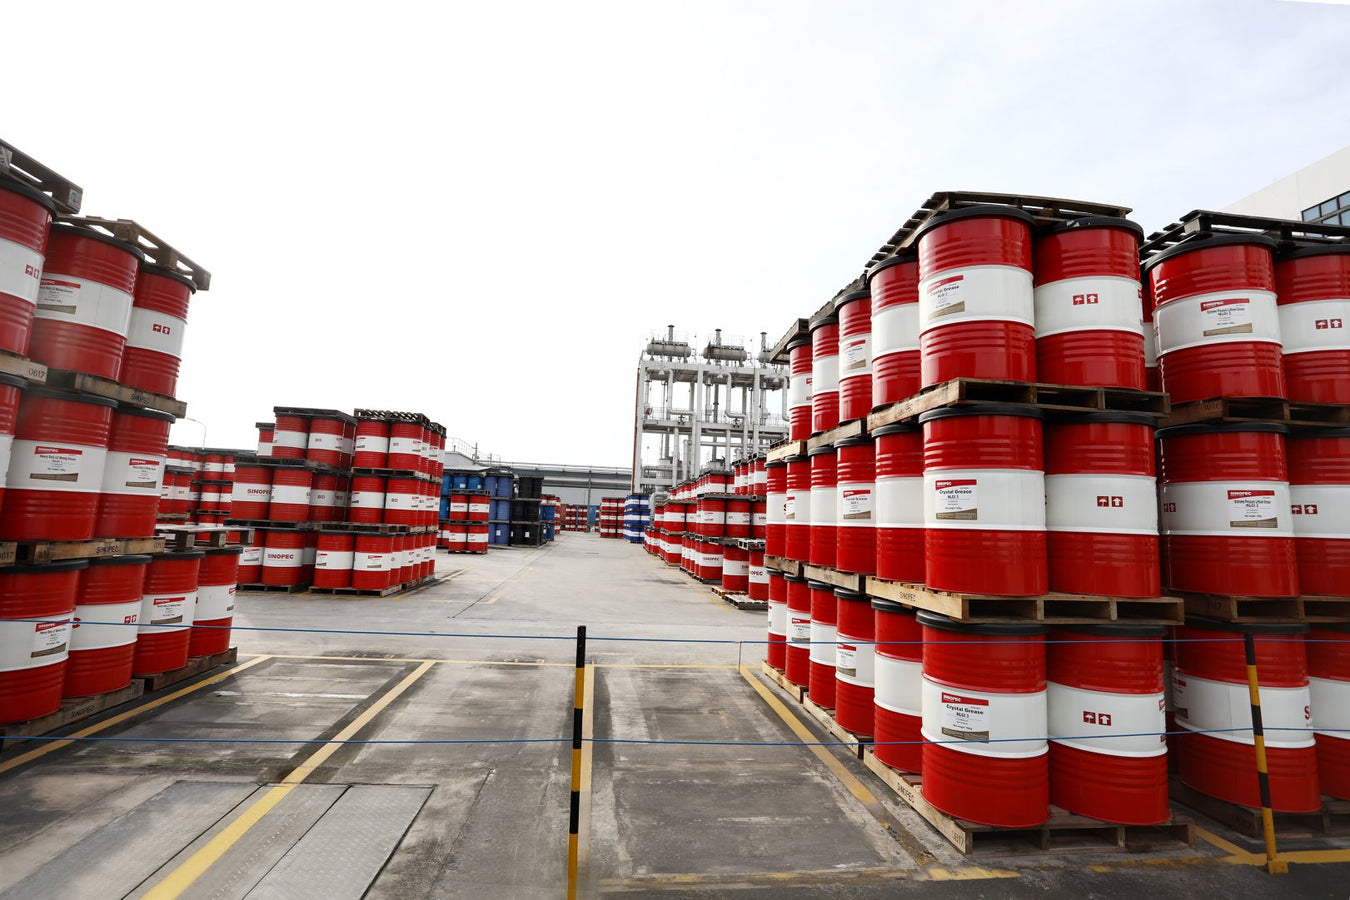 sinopec usa warehouses